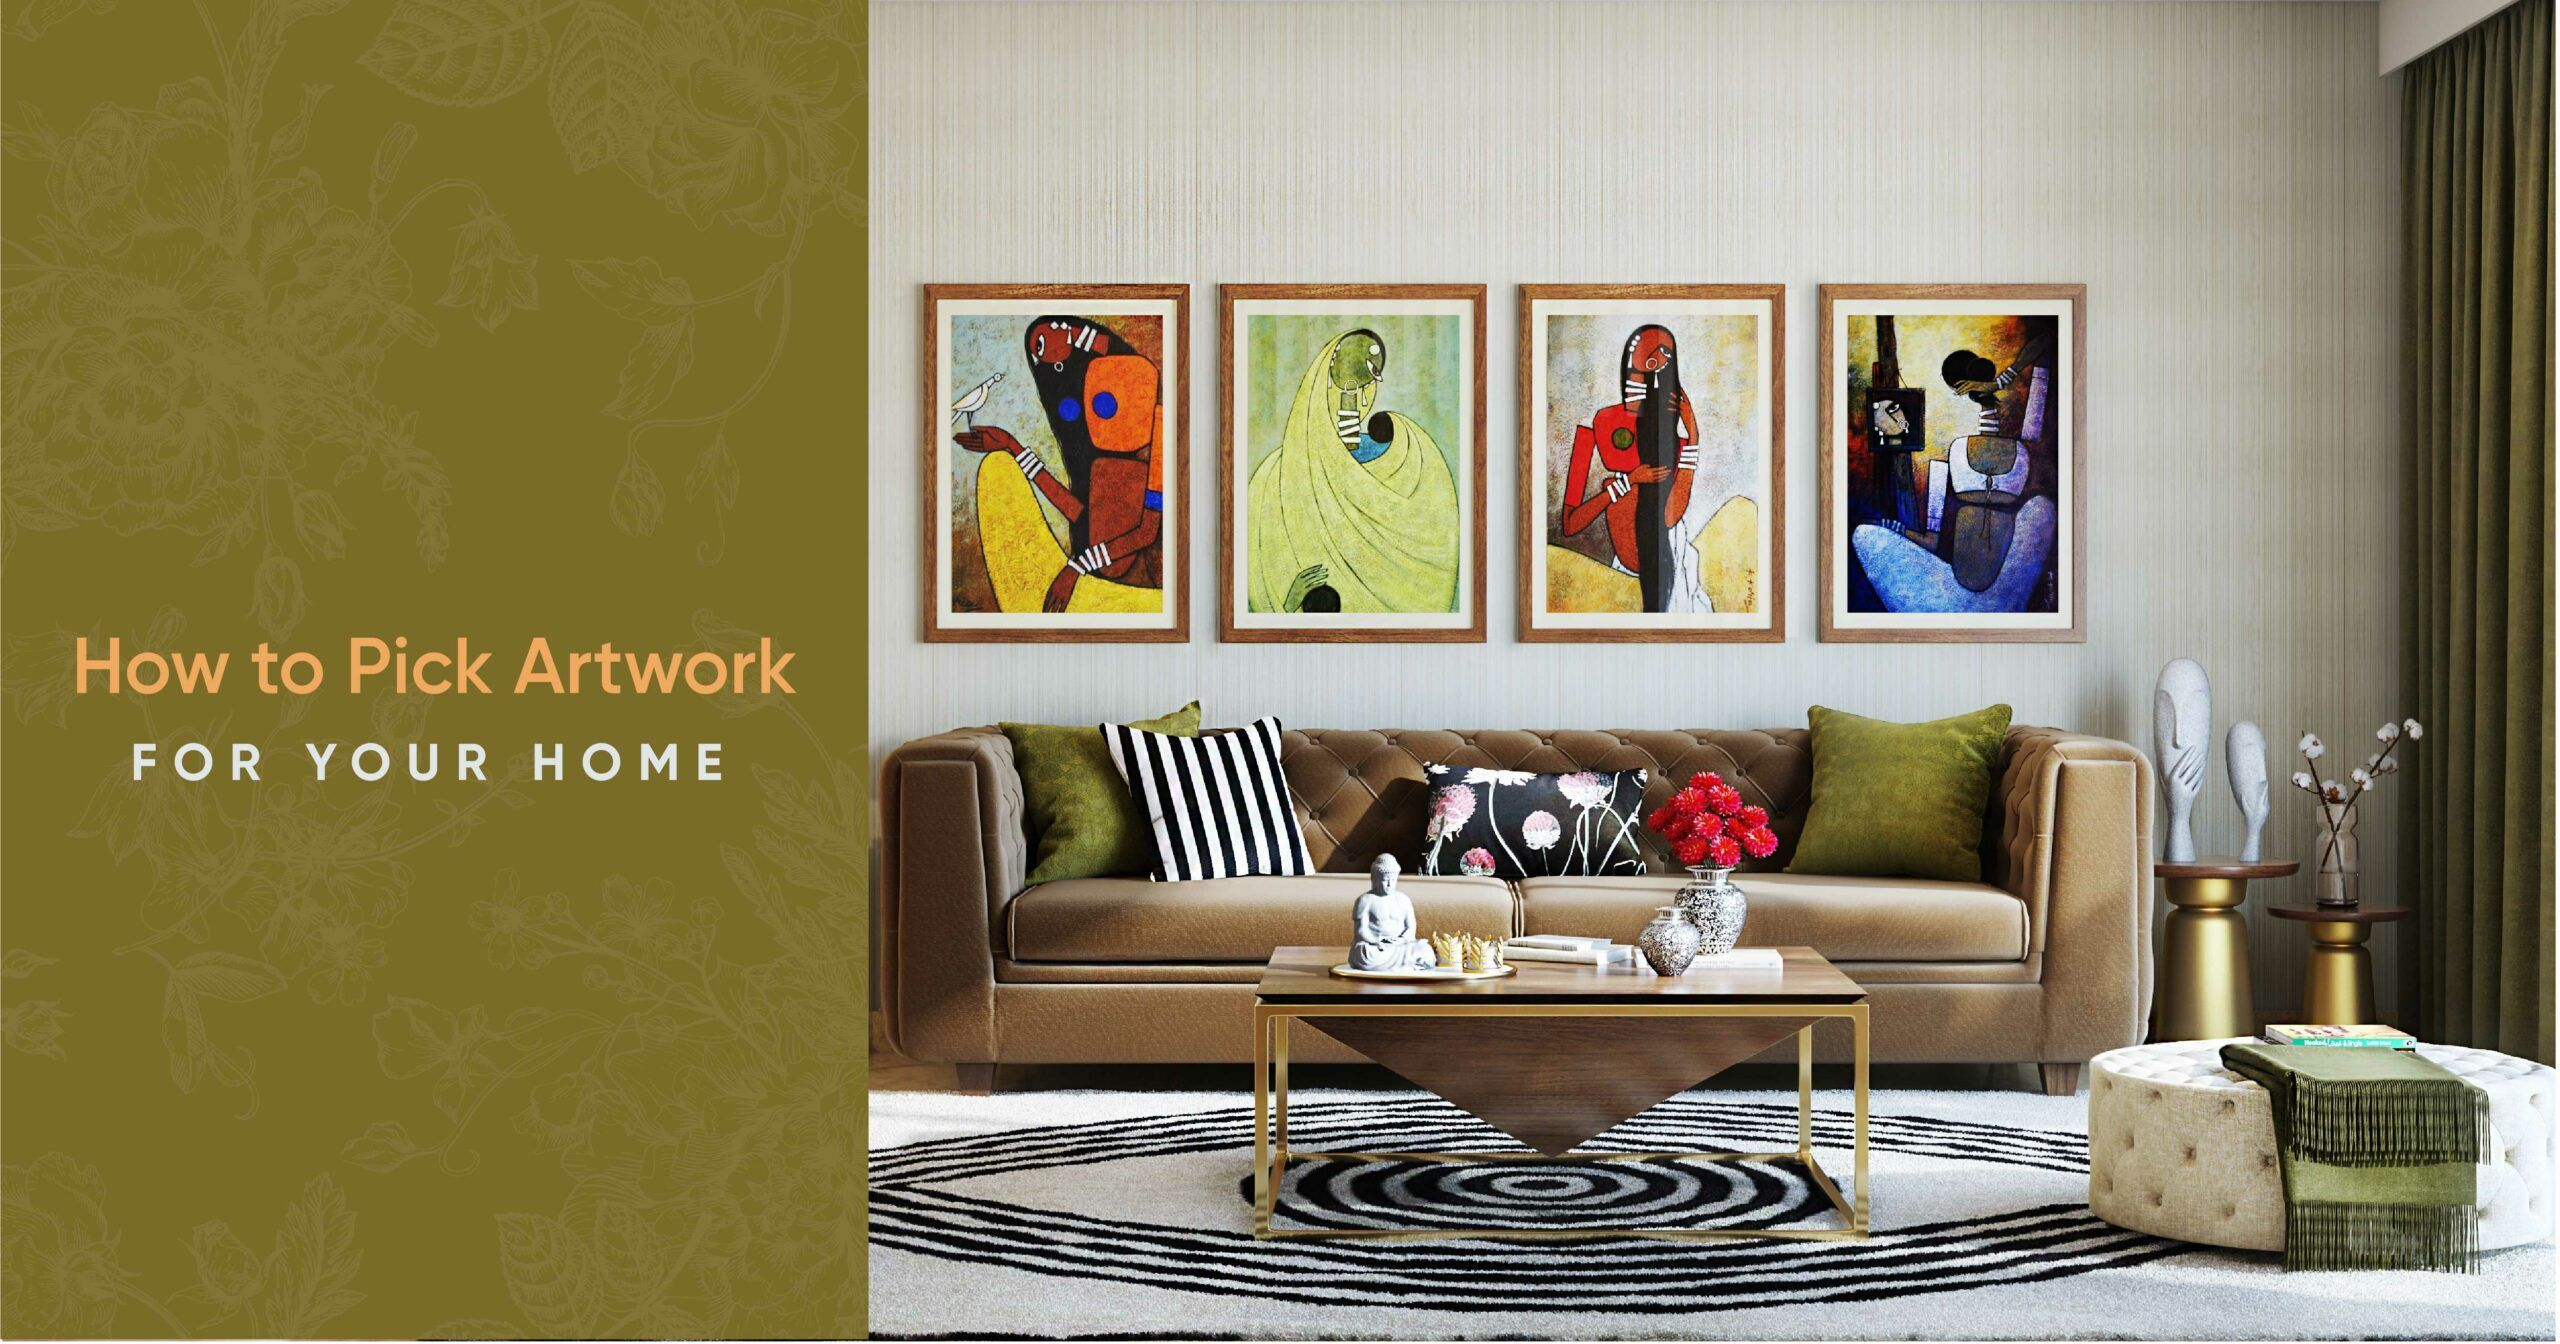 A Non-artist's Guide to Buying Artwork for Home Decor